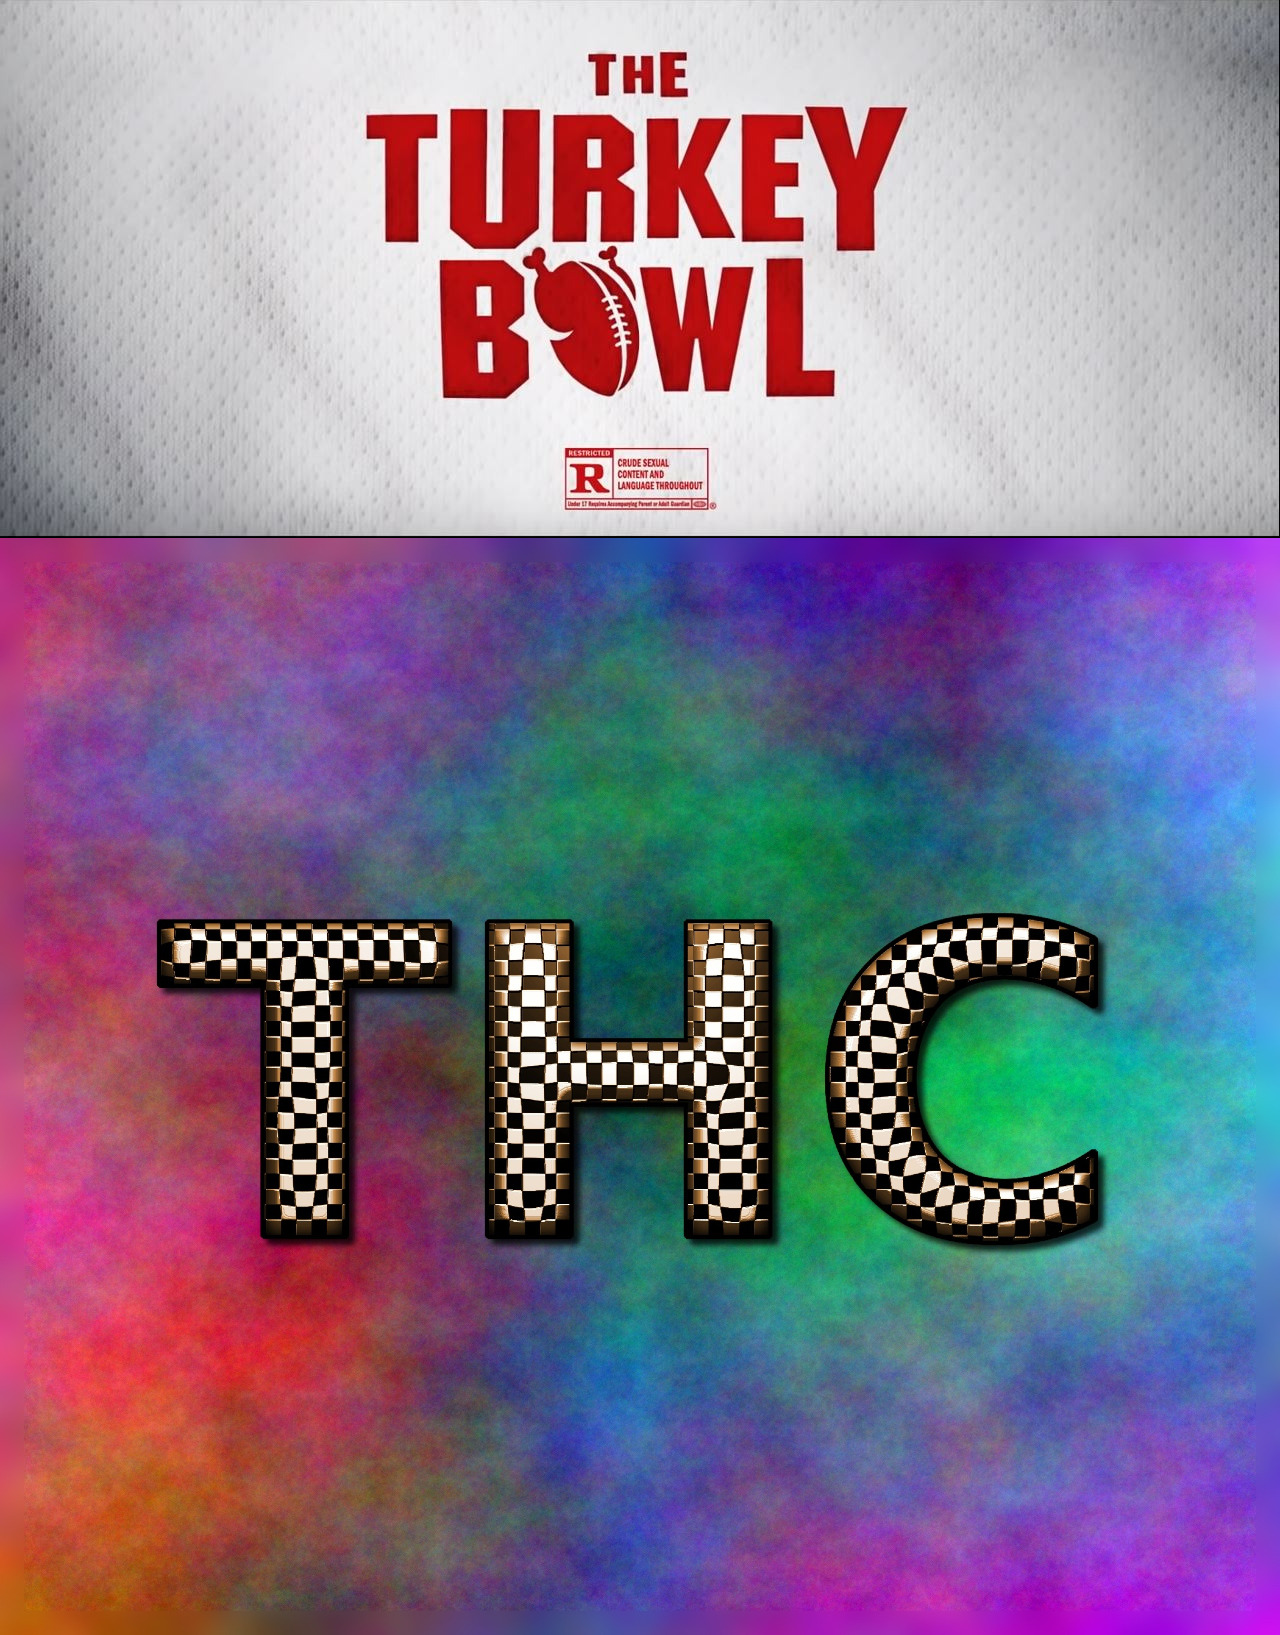 (Top) The Turkey Bowl title screenshot. (Bottom) THC graphic.